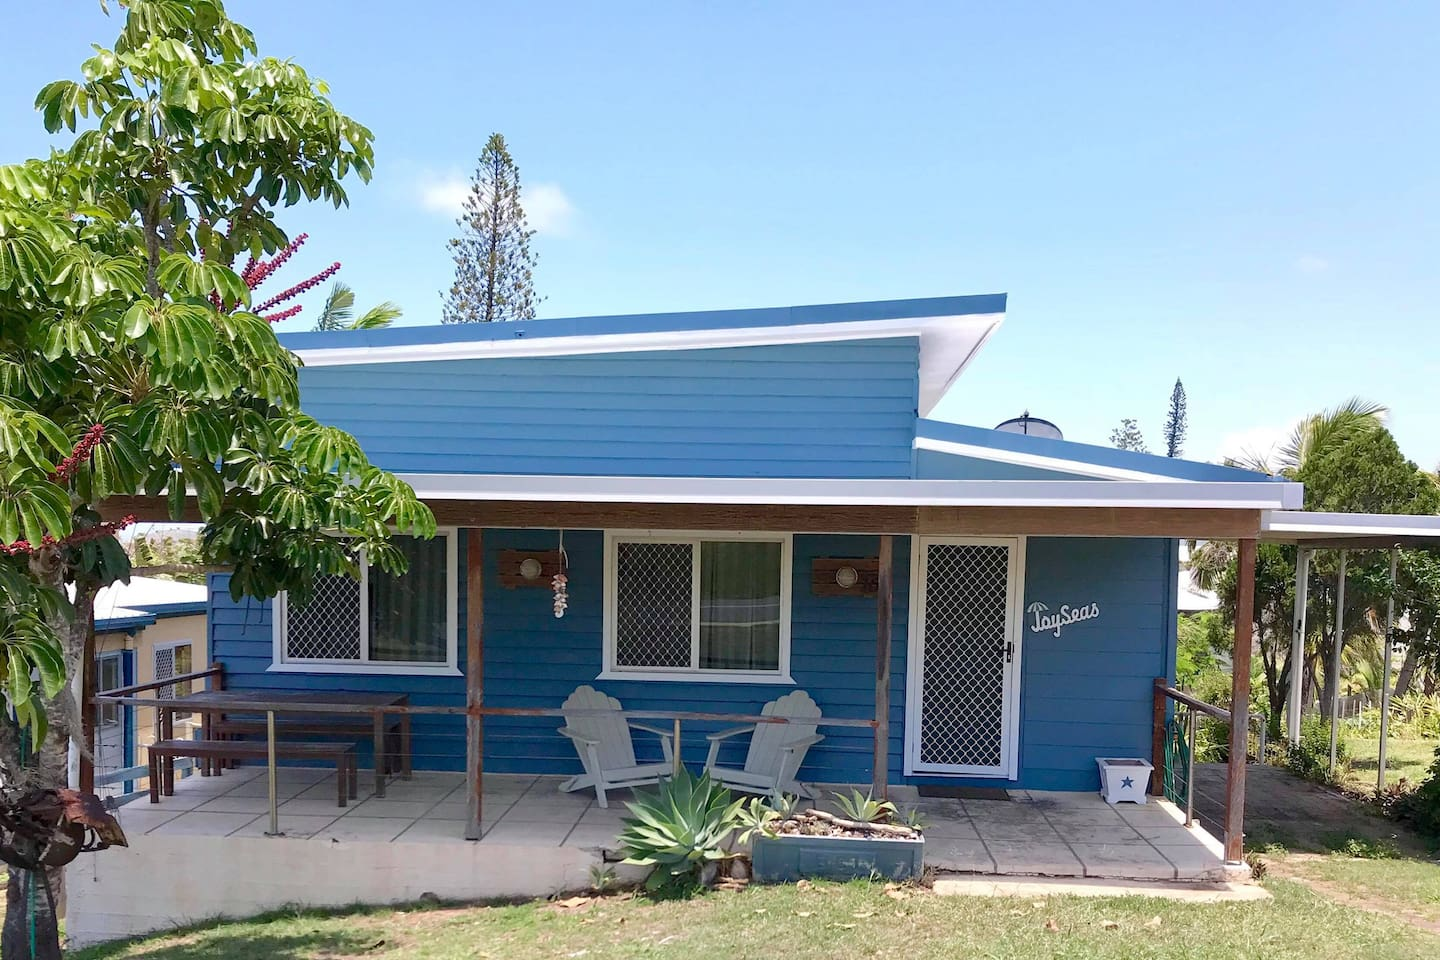 JoySeas is a traditional Emu Park Beach Shack. Originally the Single man's quarters at the Emu Park railway Station it was moved here in the 70's and converted to a holiday shack.  It's been  the place of many happy family holidays since.